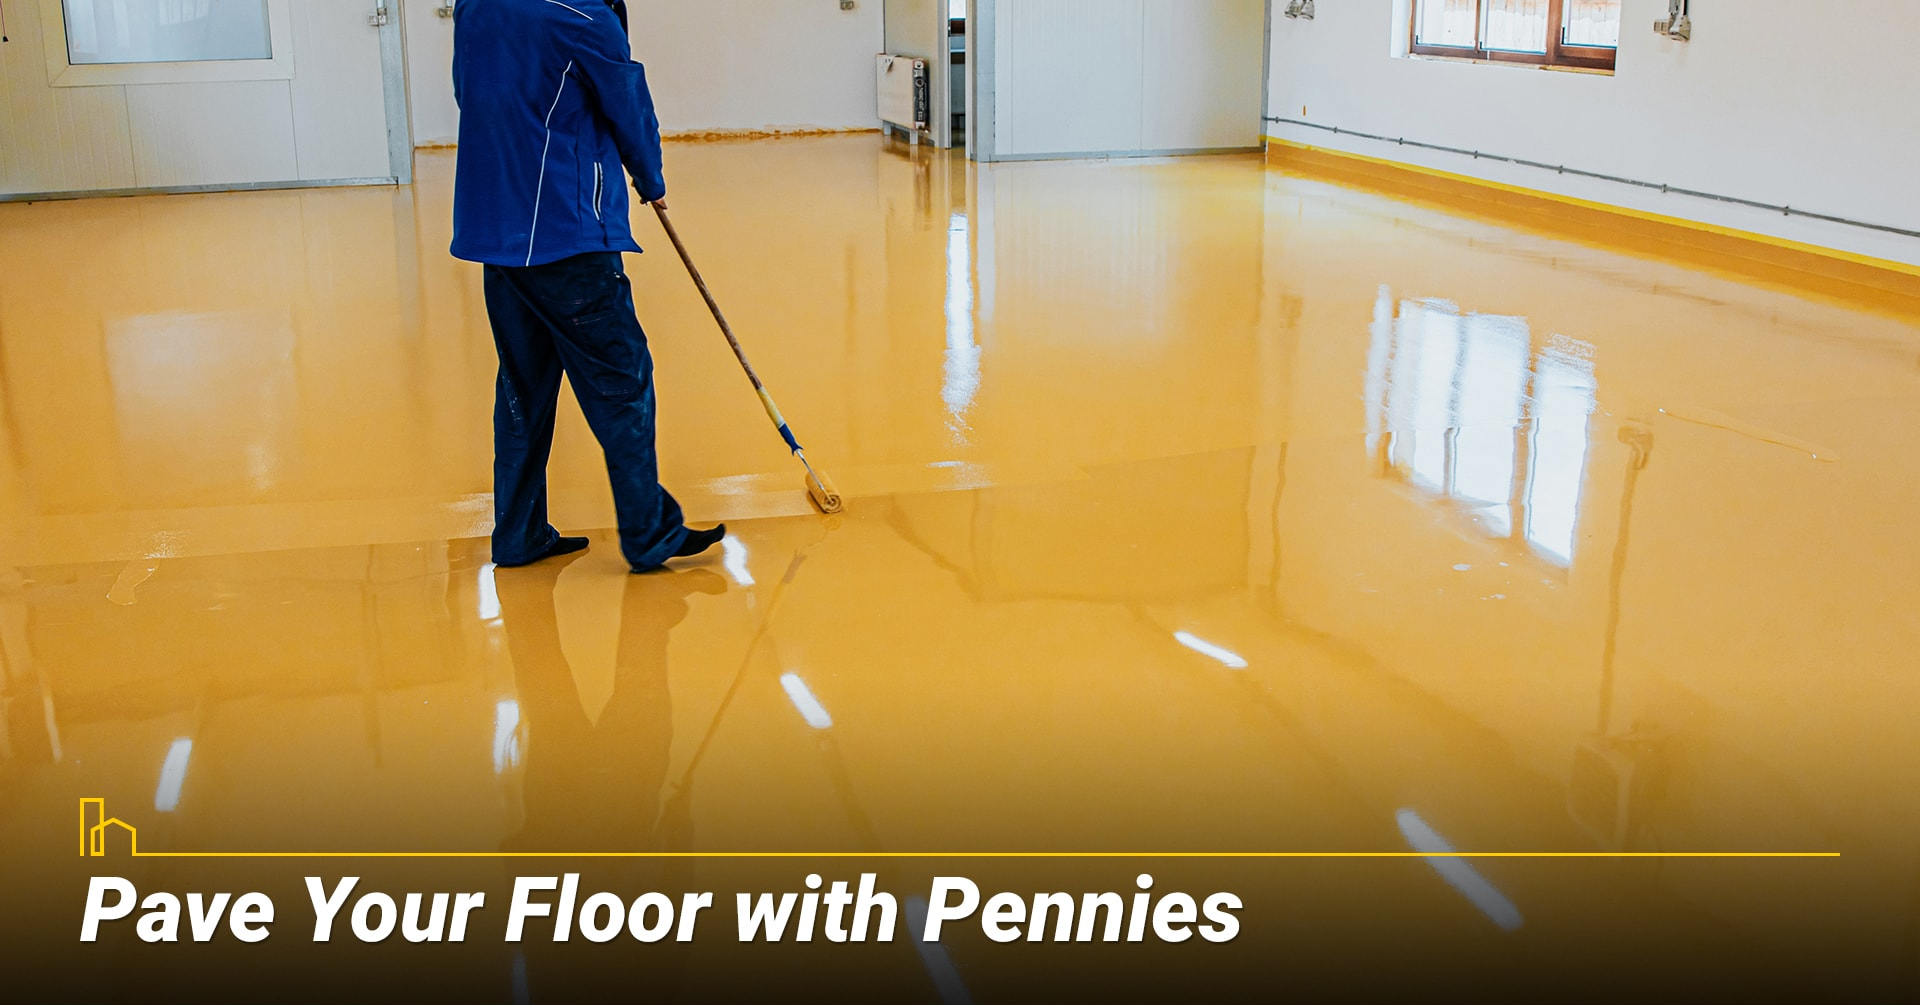 Pave Your Floor with Pennies, a new coat of paint on the floor